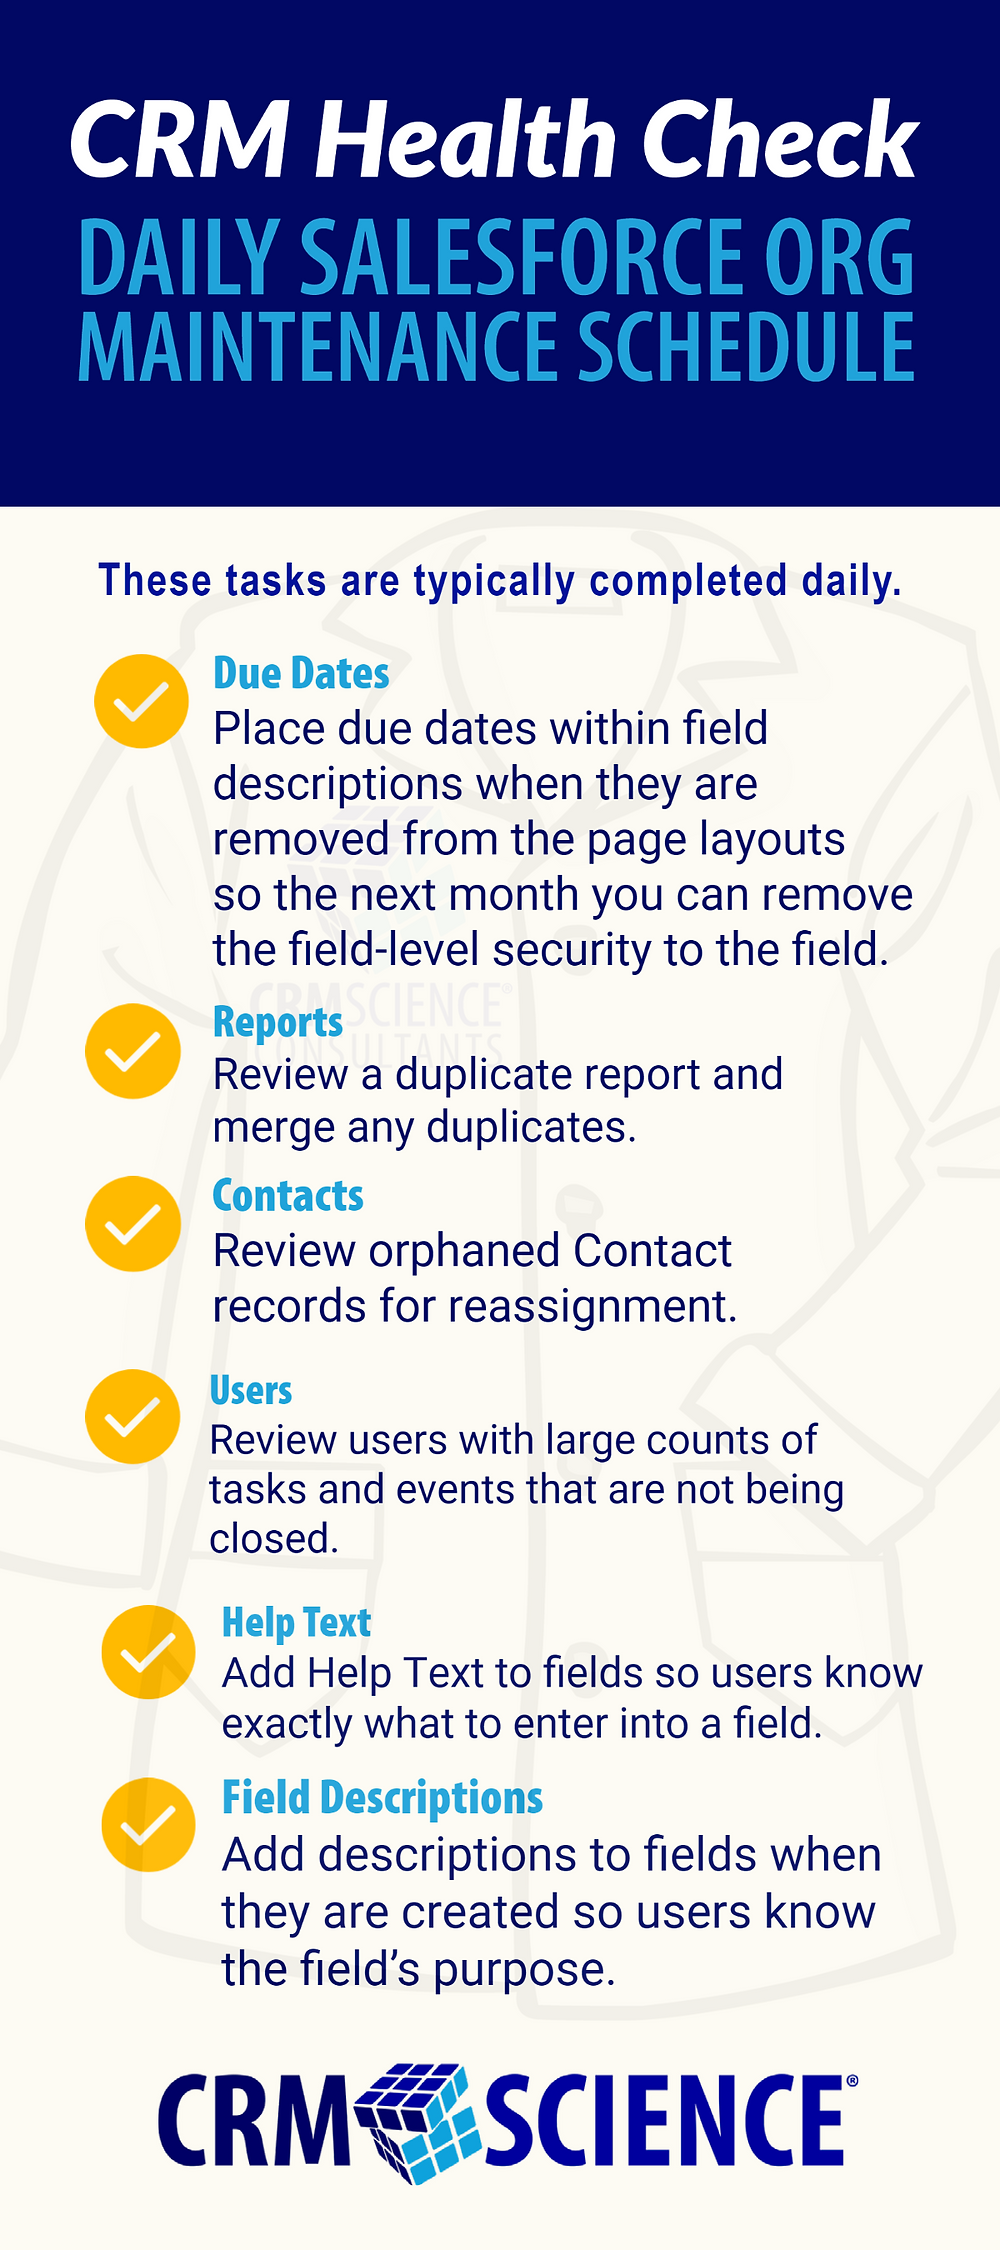 CRM Health Check: Daily Salesforce Org Maintenance Schedule